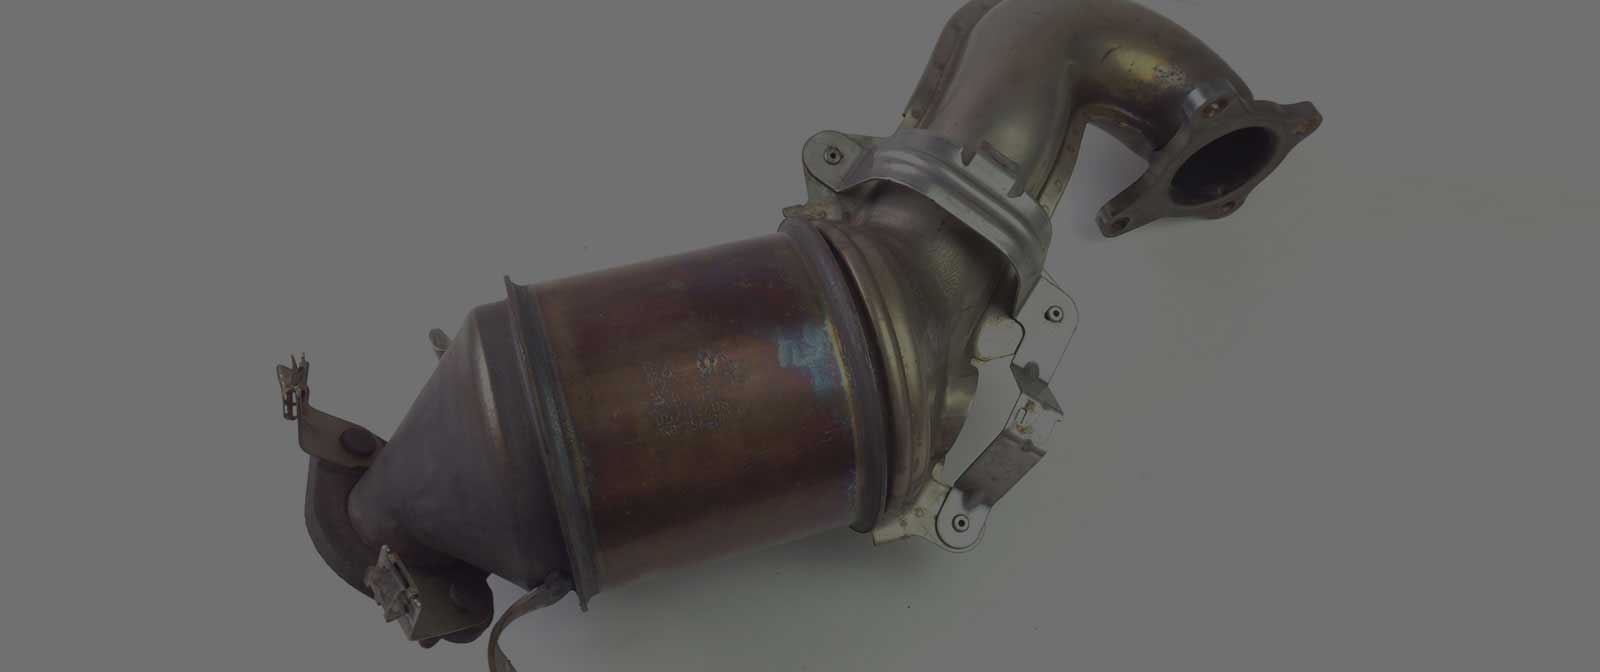 Audi catalytic converter for sale